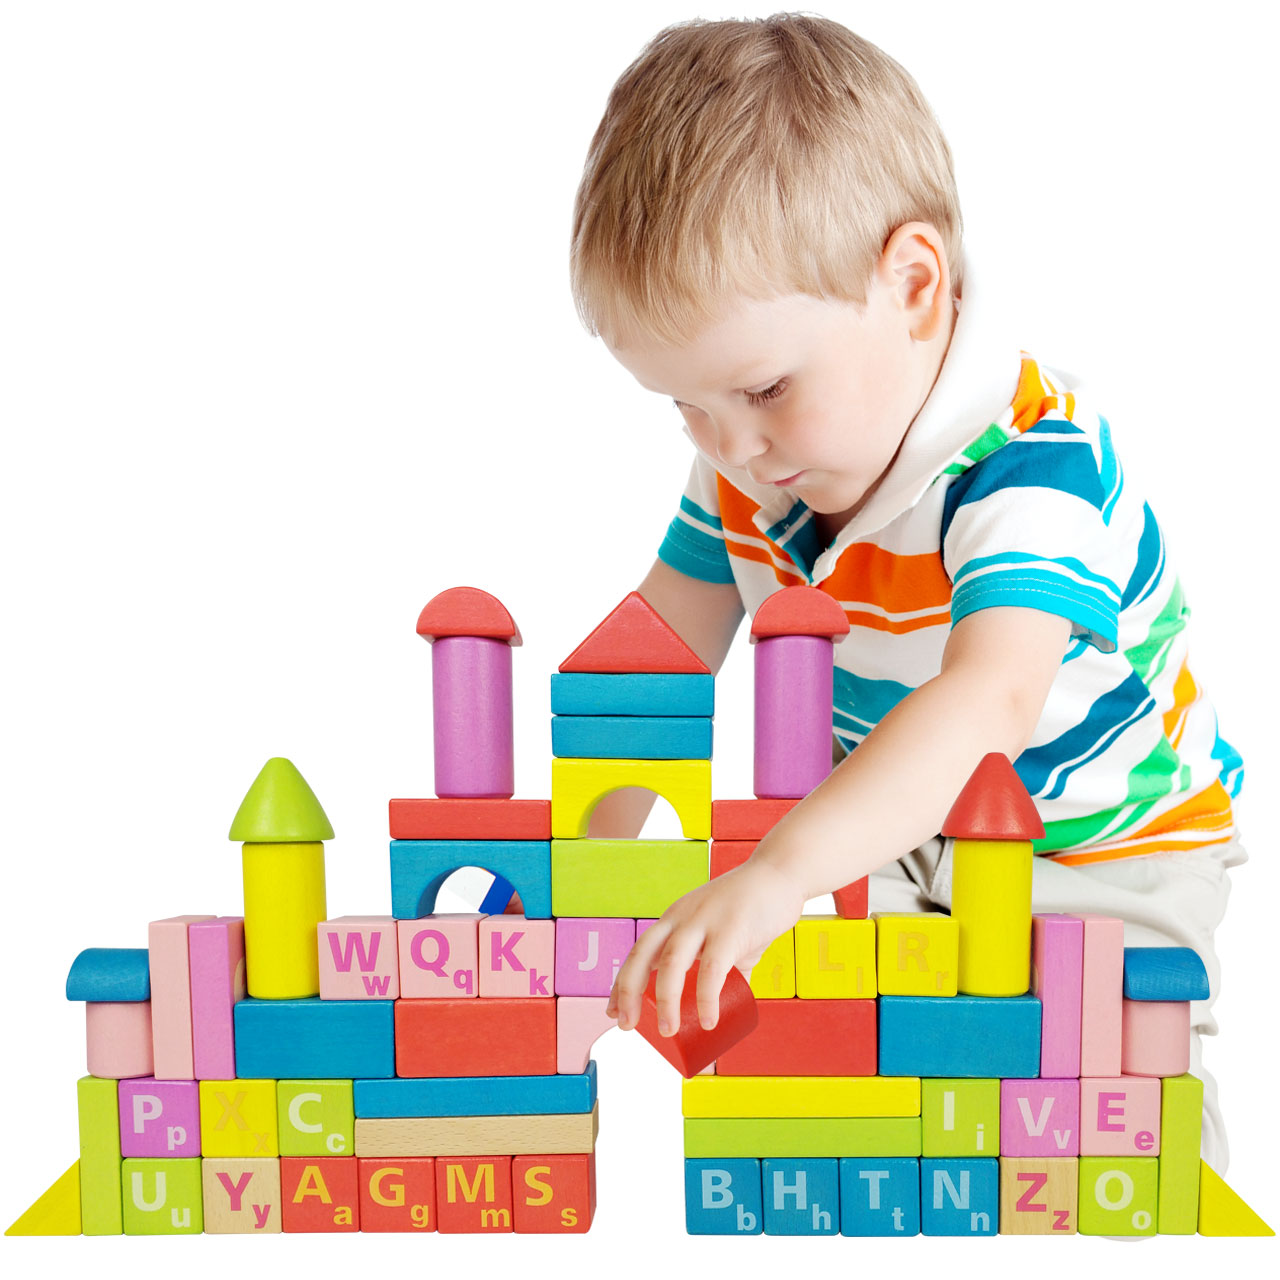 Free Shipping Kids Classic Wooden Colorful Shape Cognitive Building Blocks Toy Educational Wooden Toys Children Game Gift plastic toy funny game pinart 3d clone shape pin art shoumo variety colorful needle child get face palm model 1pc free shipping